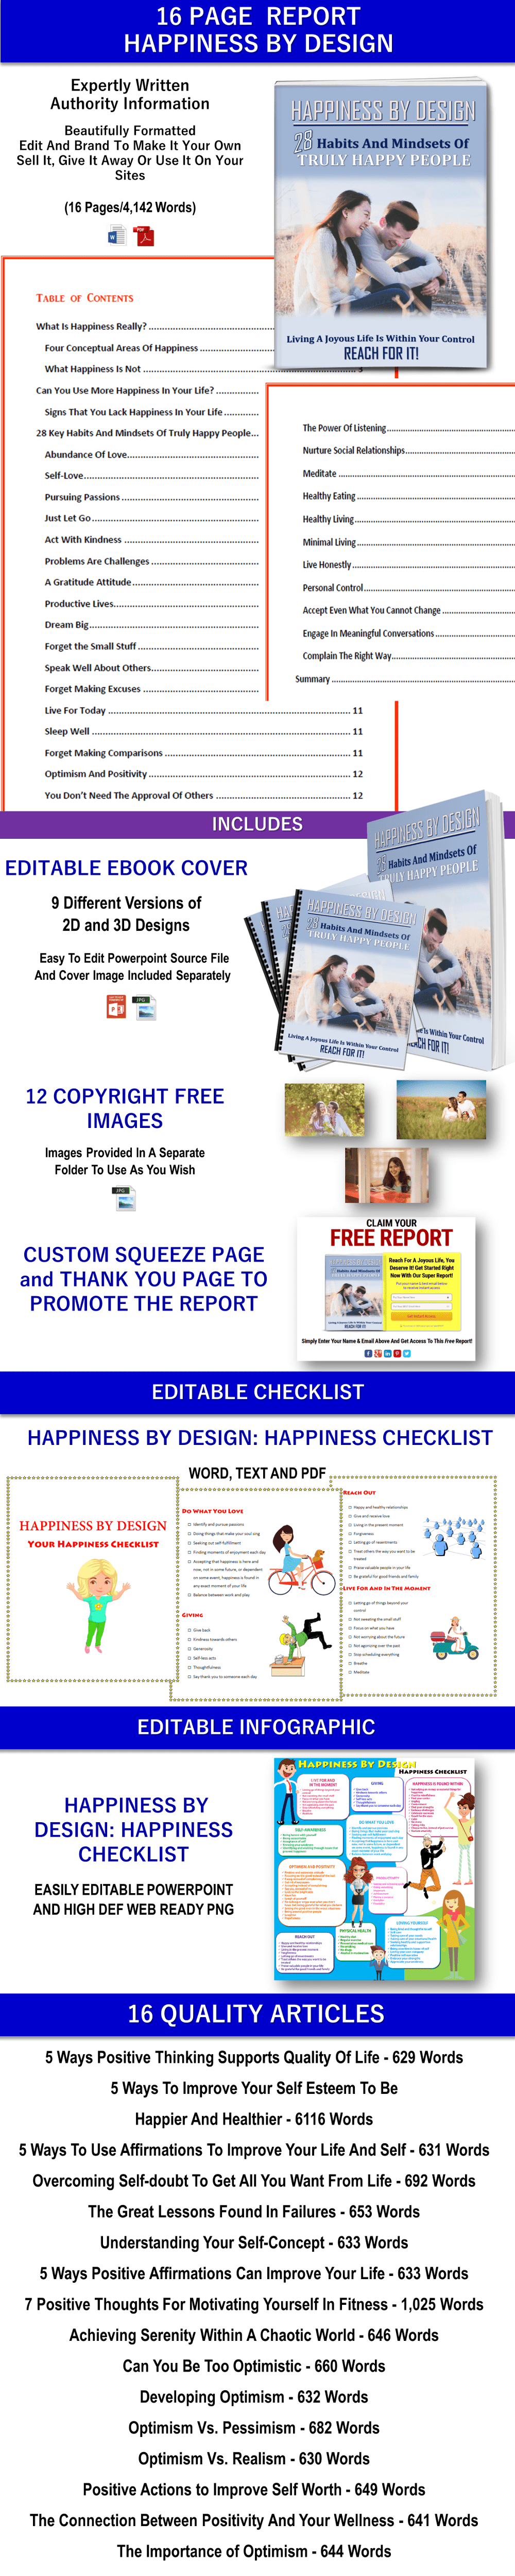 Positive Attitude and Positive Thinking Content with PLR Rights